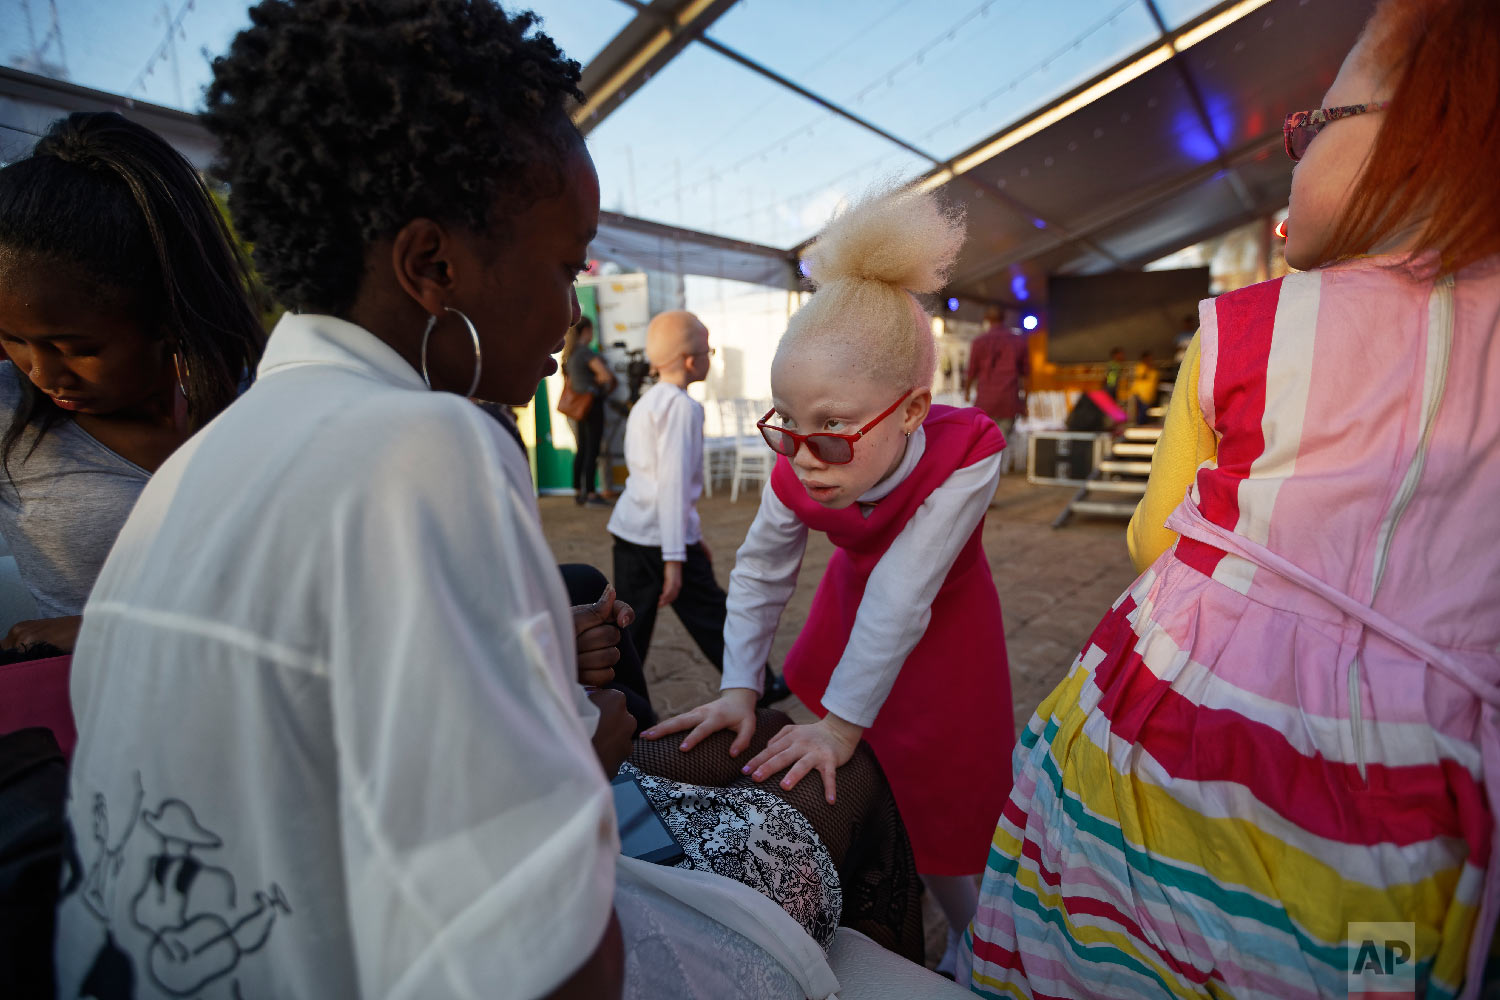 Albino girl Shirlyne 7, looks up at her aunt, left, and asks her to paint her nails as she waits for the start of the Mr. & Miss Albinism East Africa contest, organized by the Albinism Society of Kenya, in Nairobi, Kenya on Nov. 30, 2018. (AP Photo/Ben Curtis)